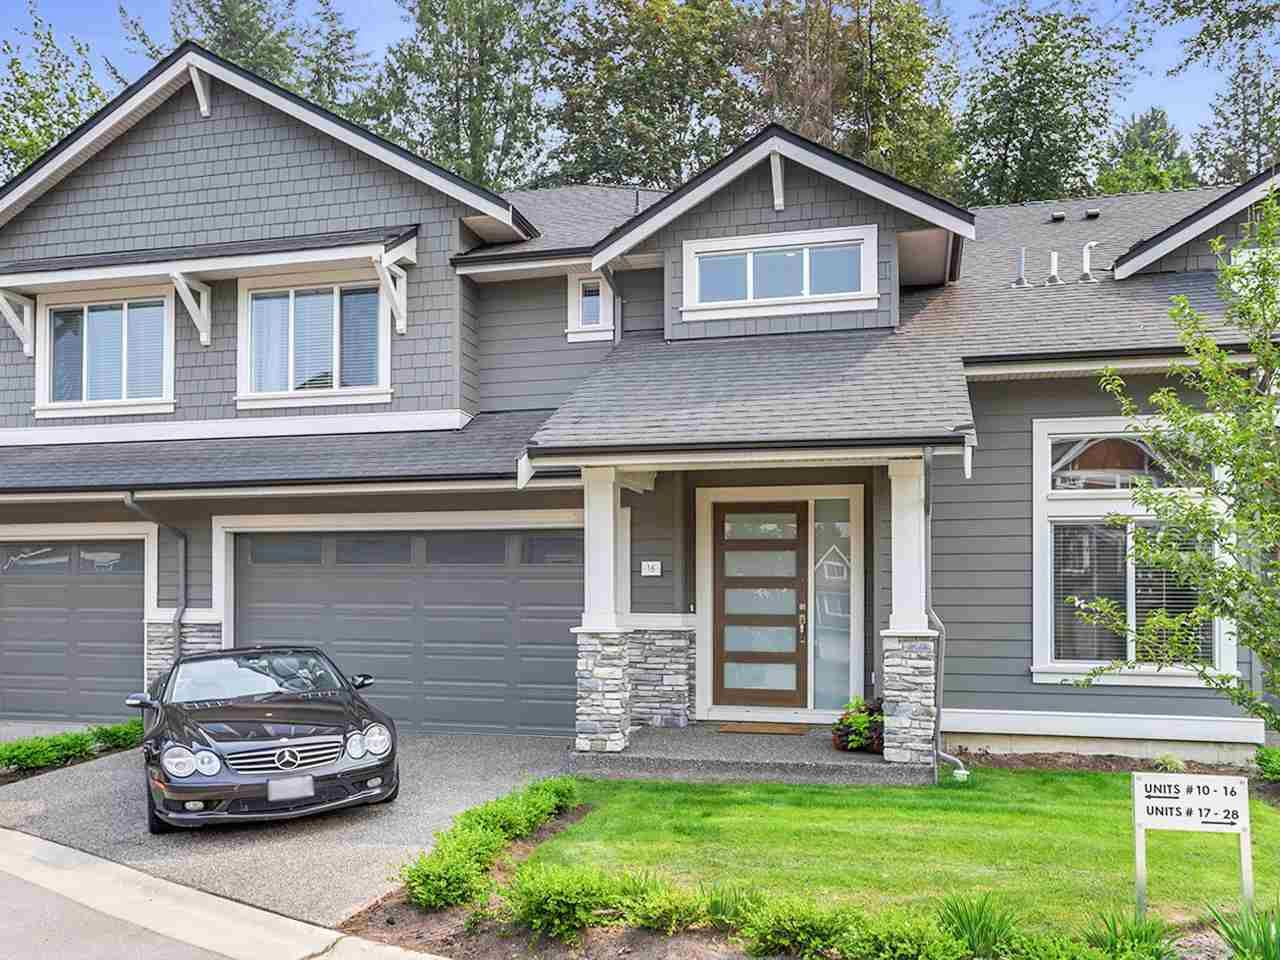 """Main Photo: 16 3103 160 Street in Surrey: Grandview Surrey Townhouse for sale in """"PRIMA"""" (South Surrey White Rock)  : MLS®# R2298557"""